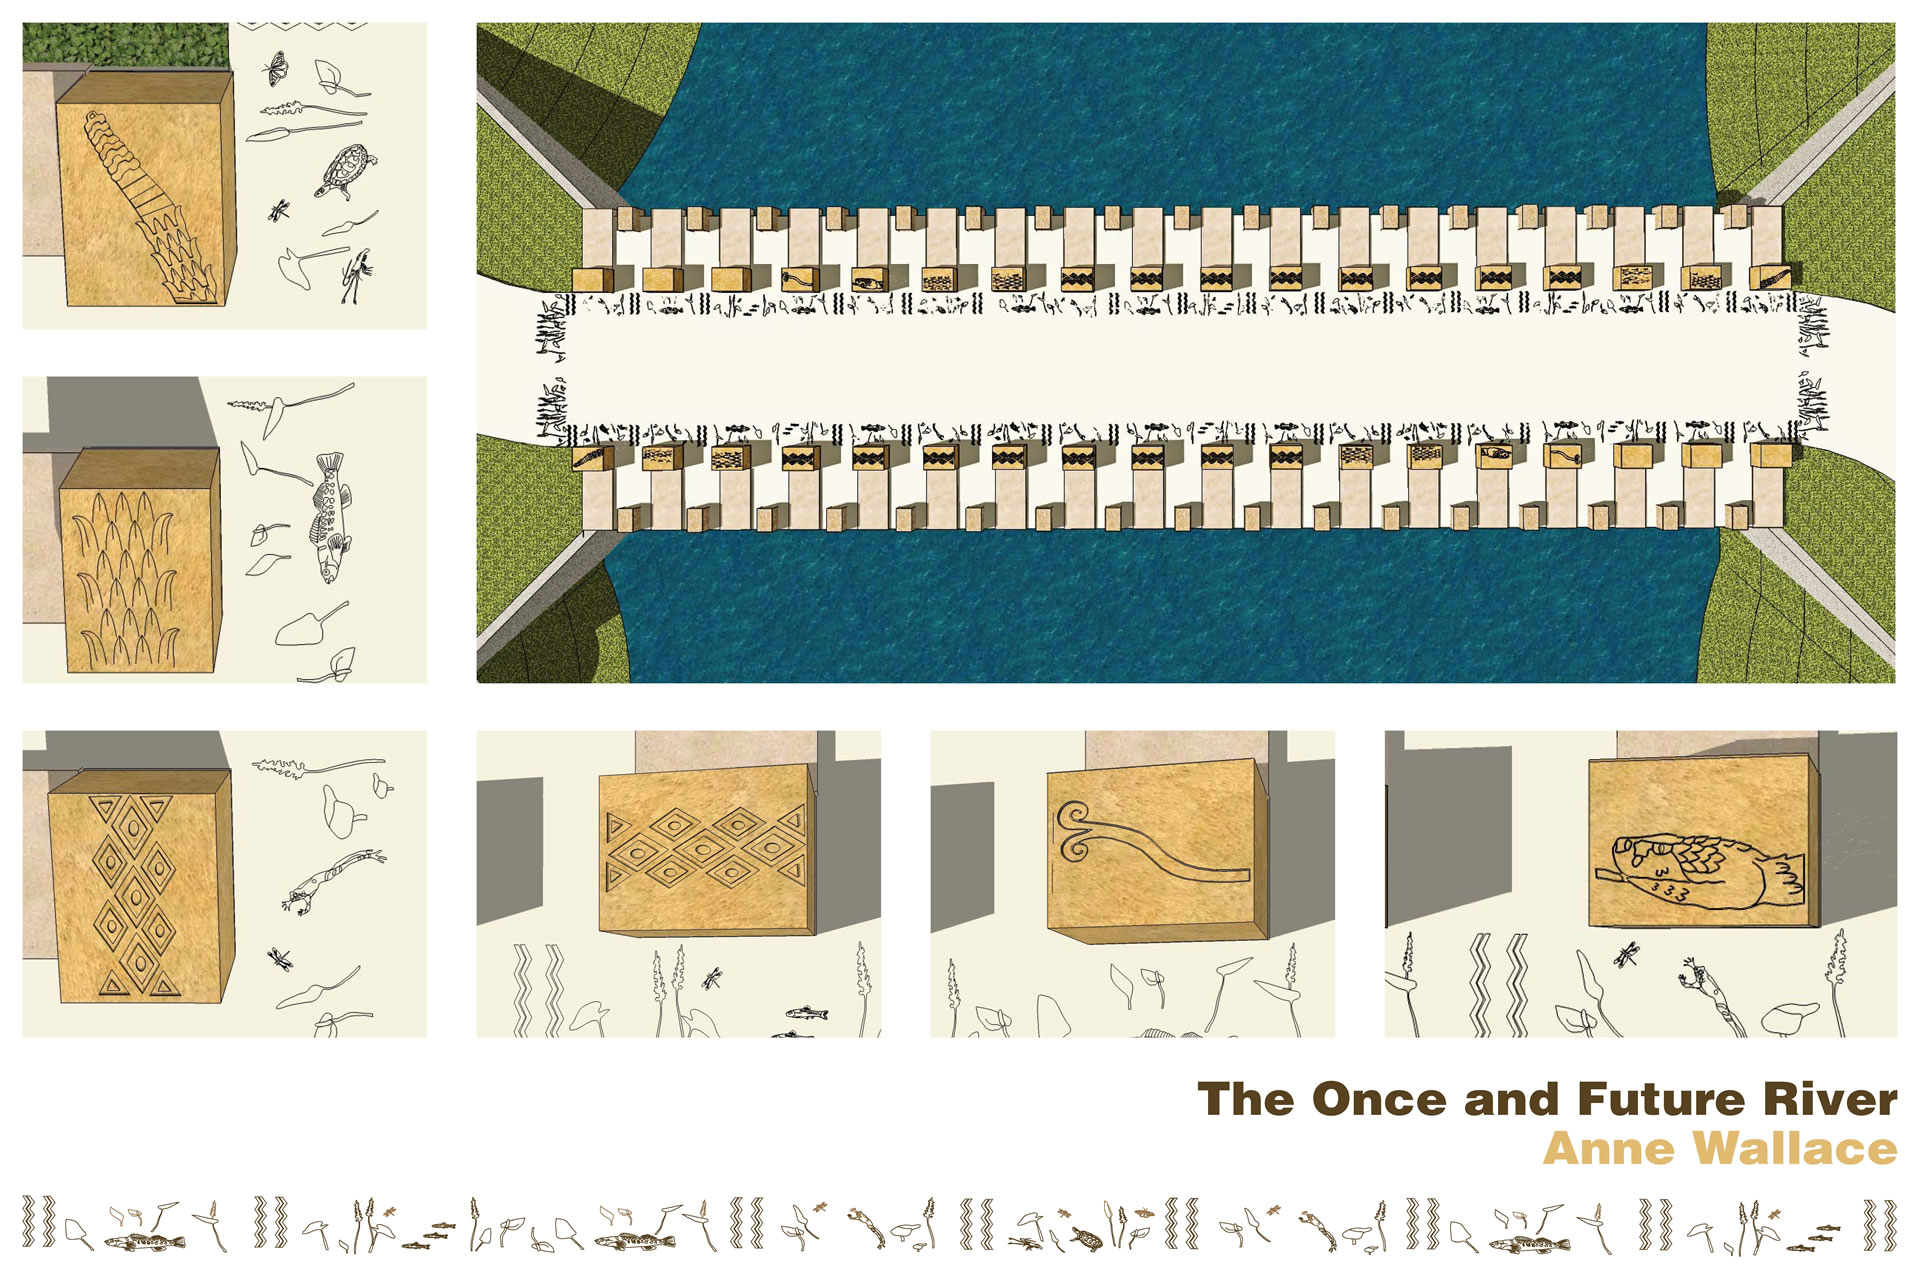 Anne Wallace | The Once and Future River rendering